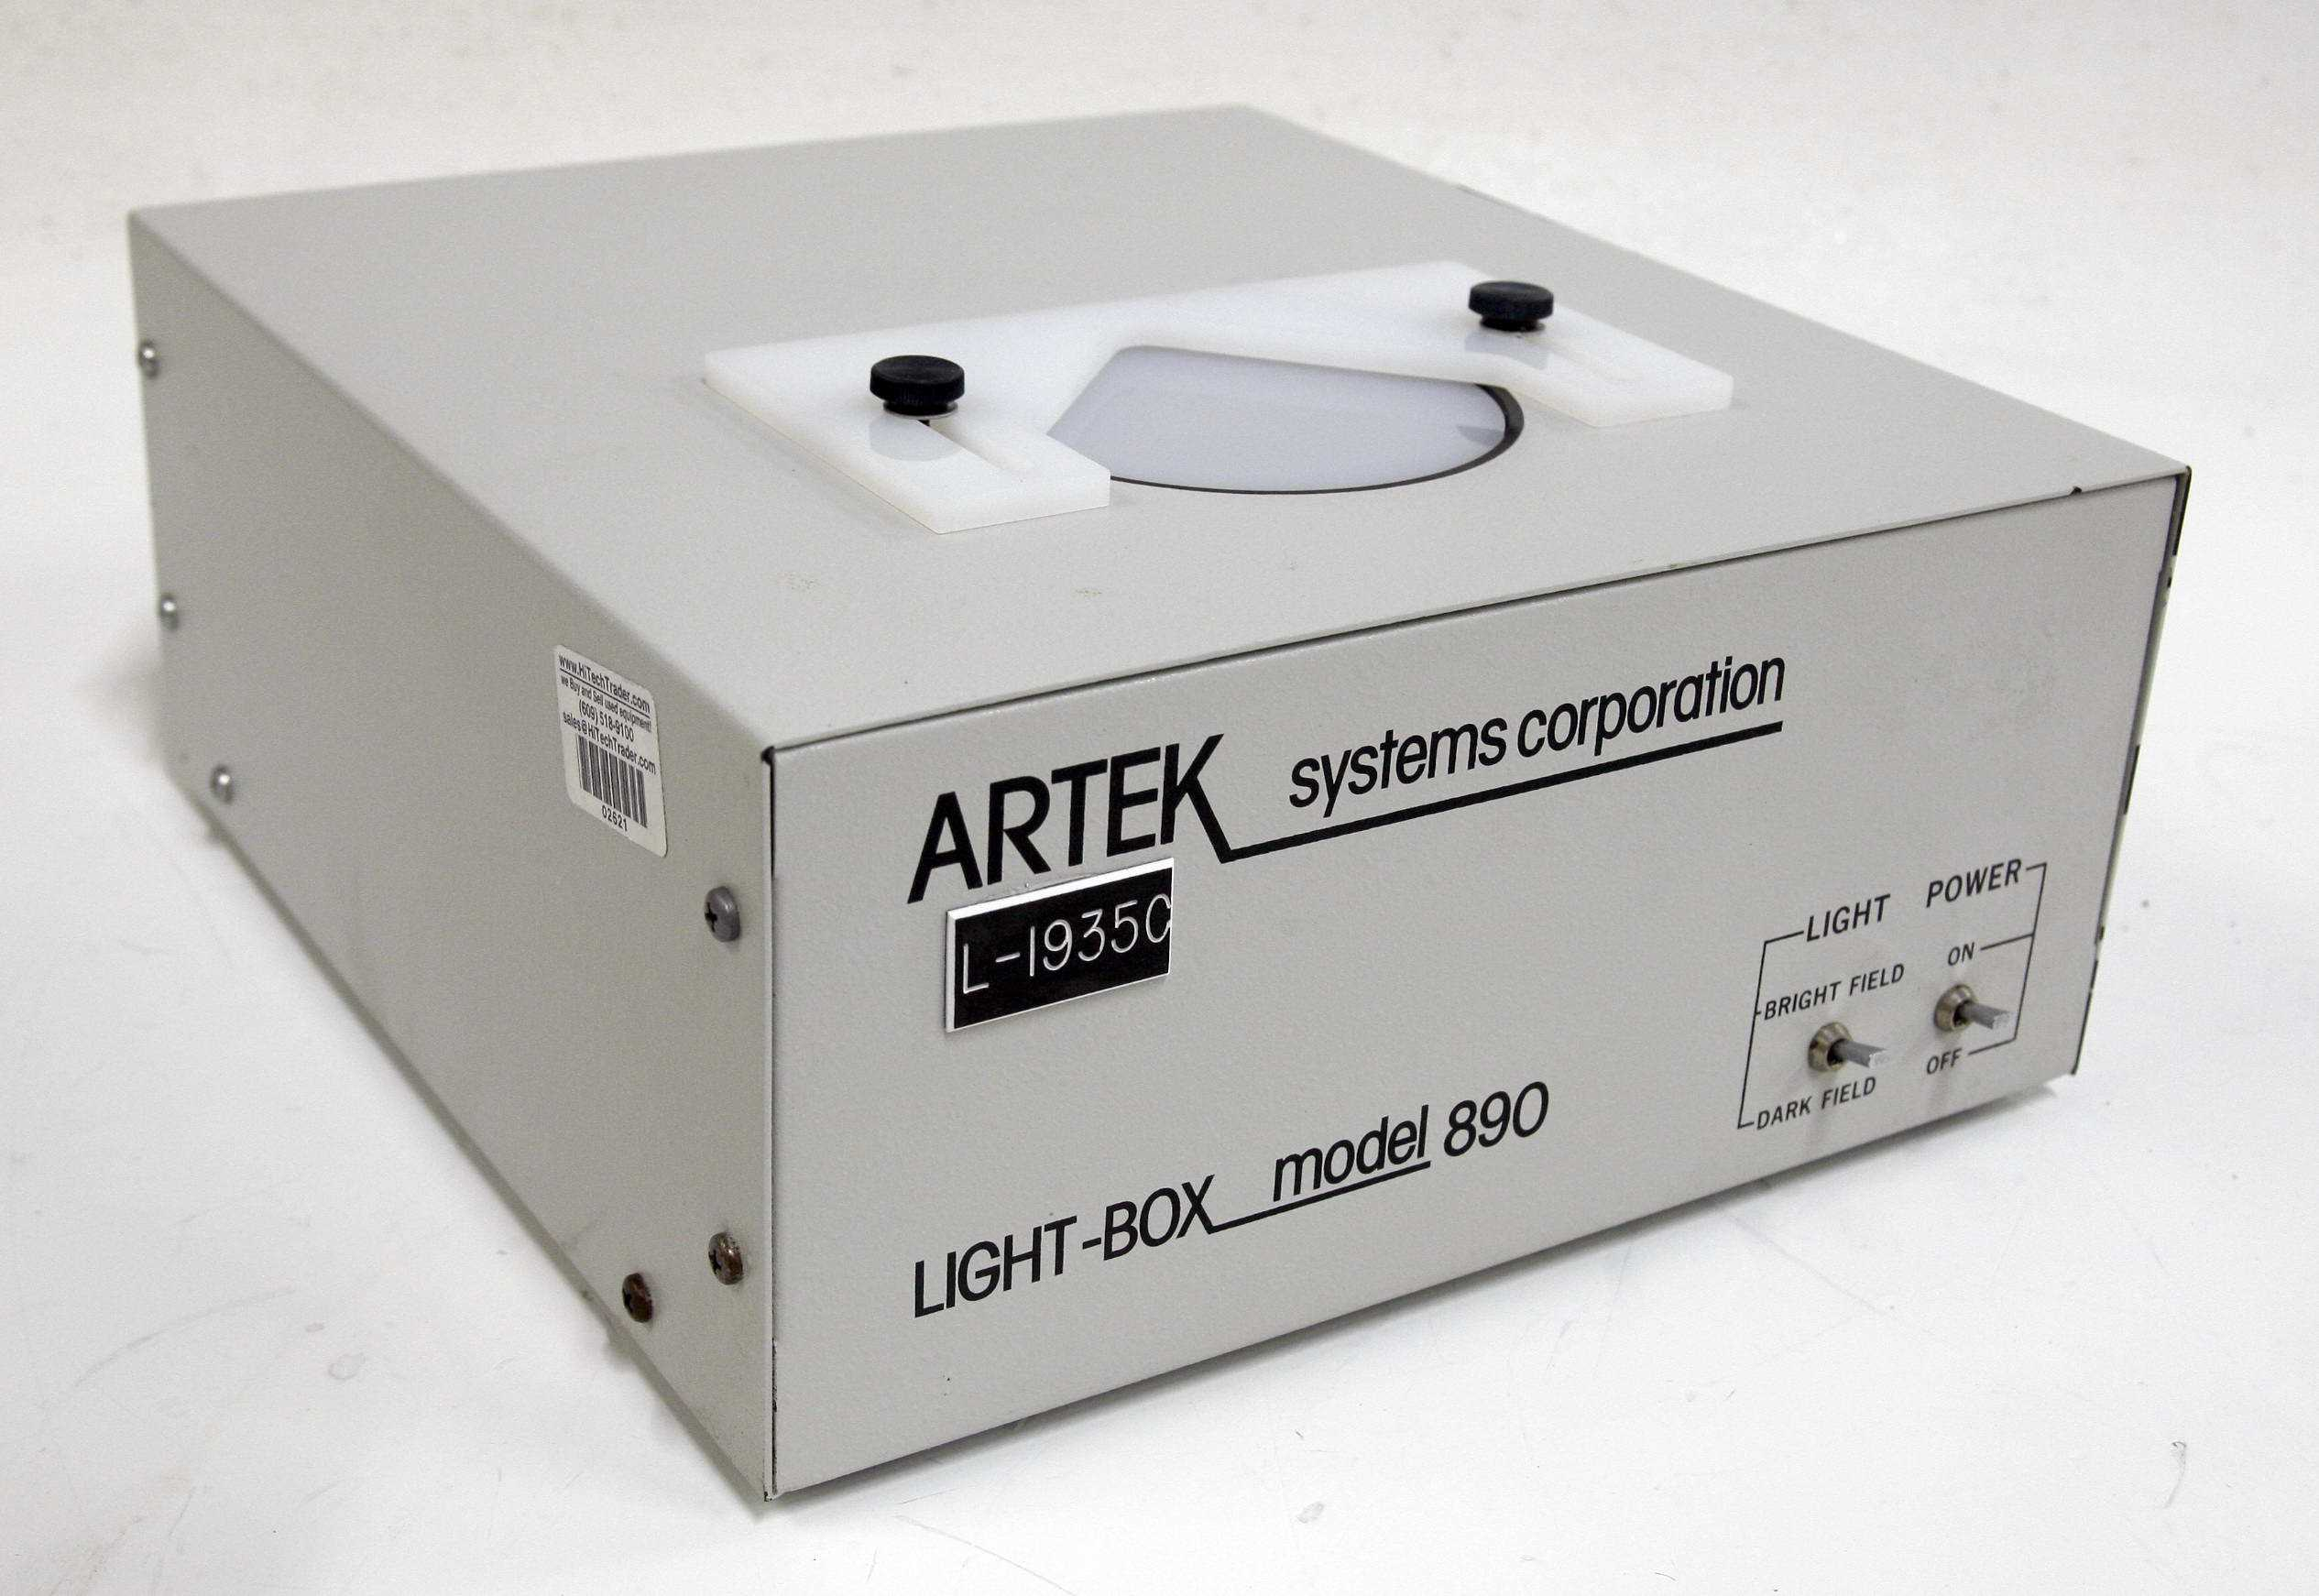 Artek Light Box Model 890